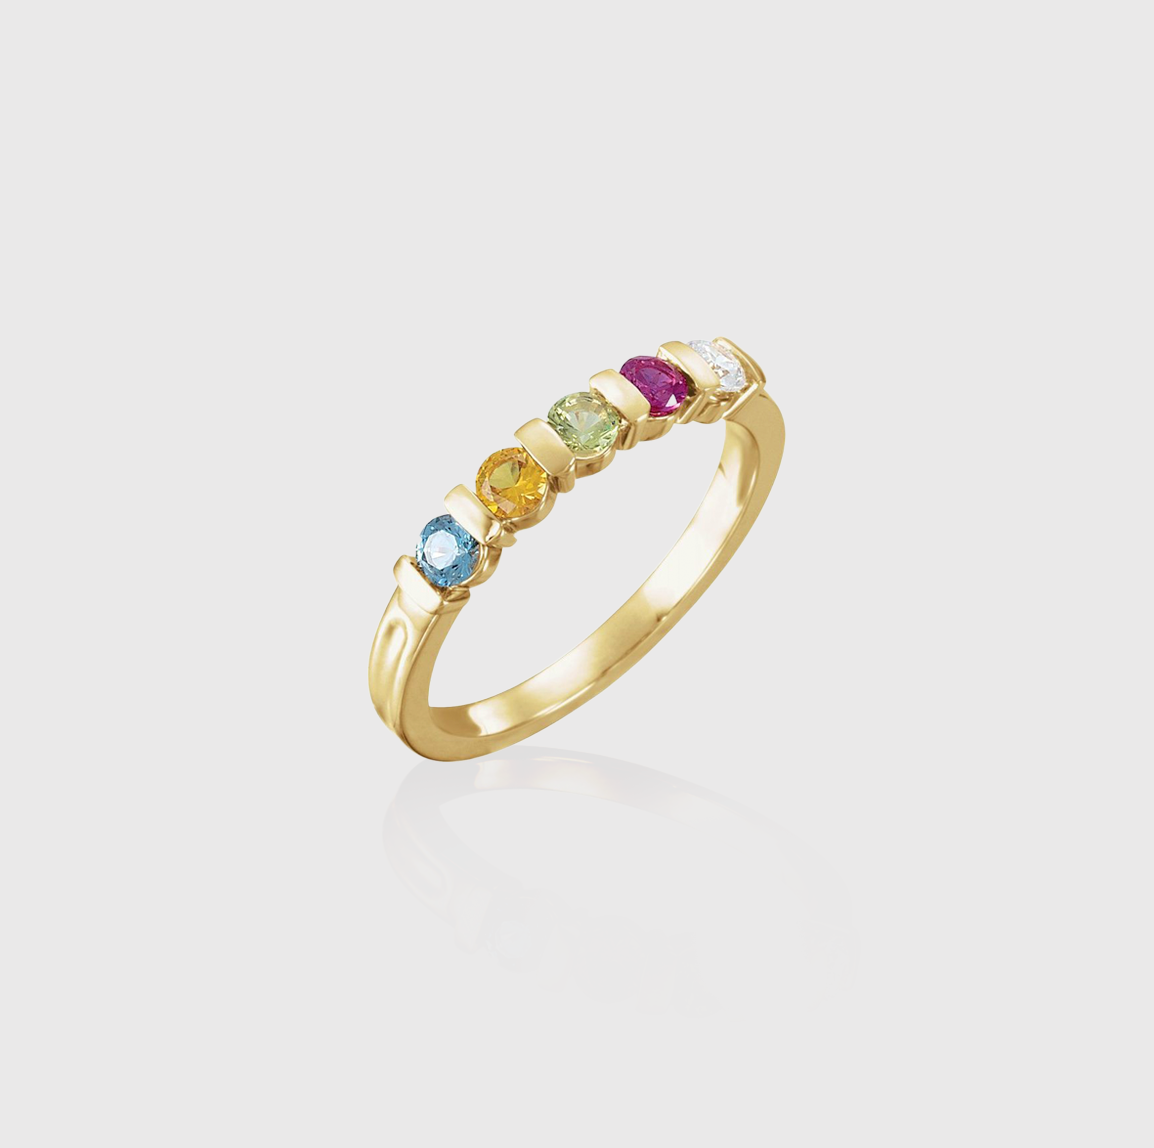 In the Band Stacks Five-Stone Stackable Family Ring